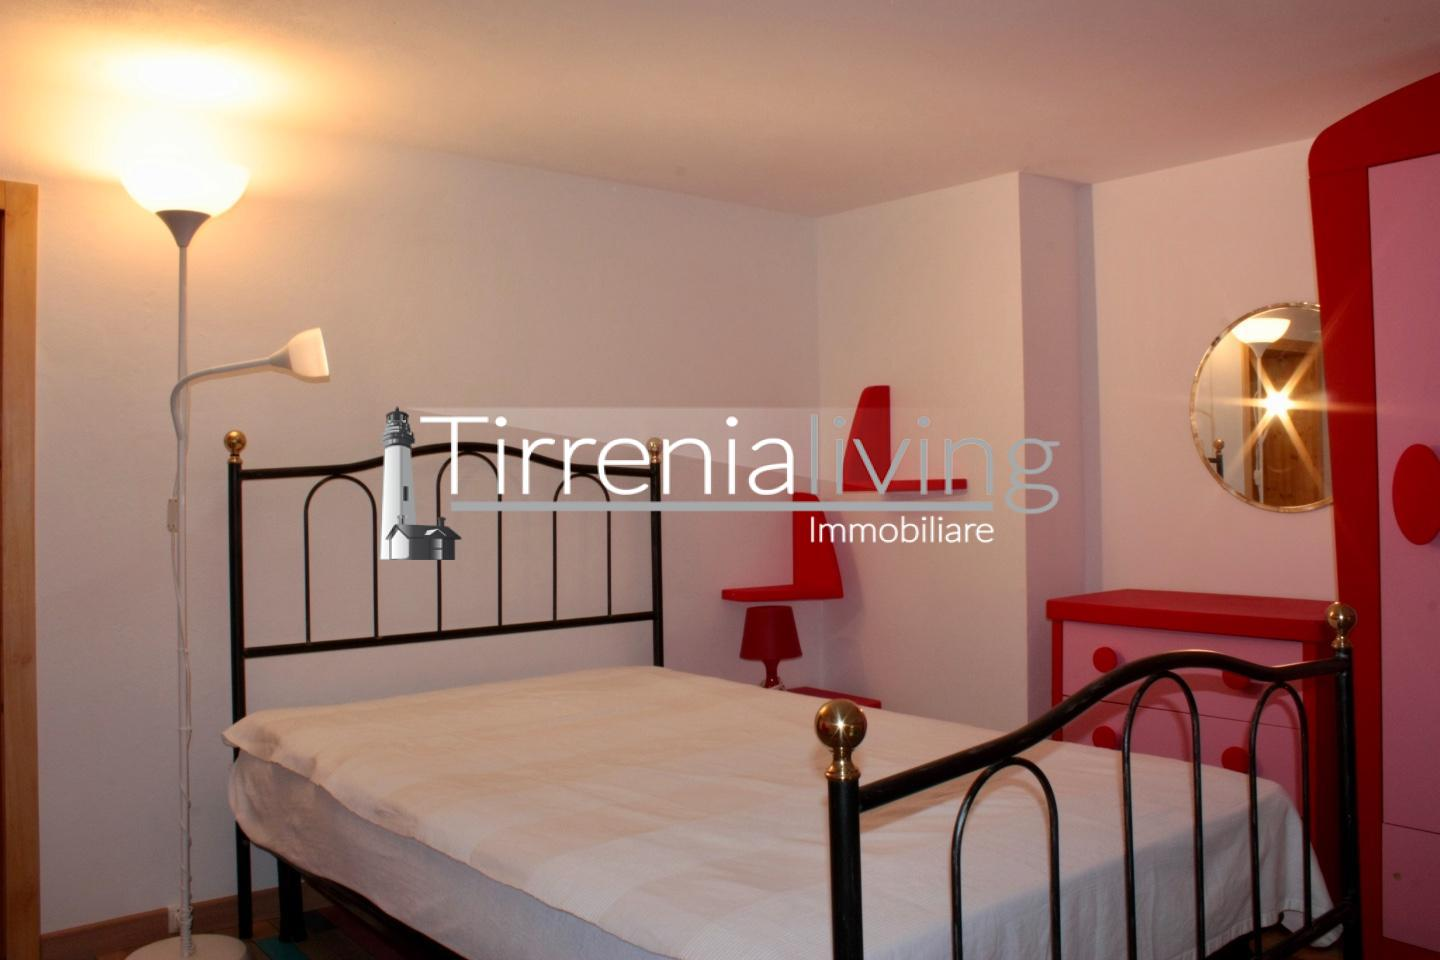 Apartment for holiday rentals, ref. C-333-E